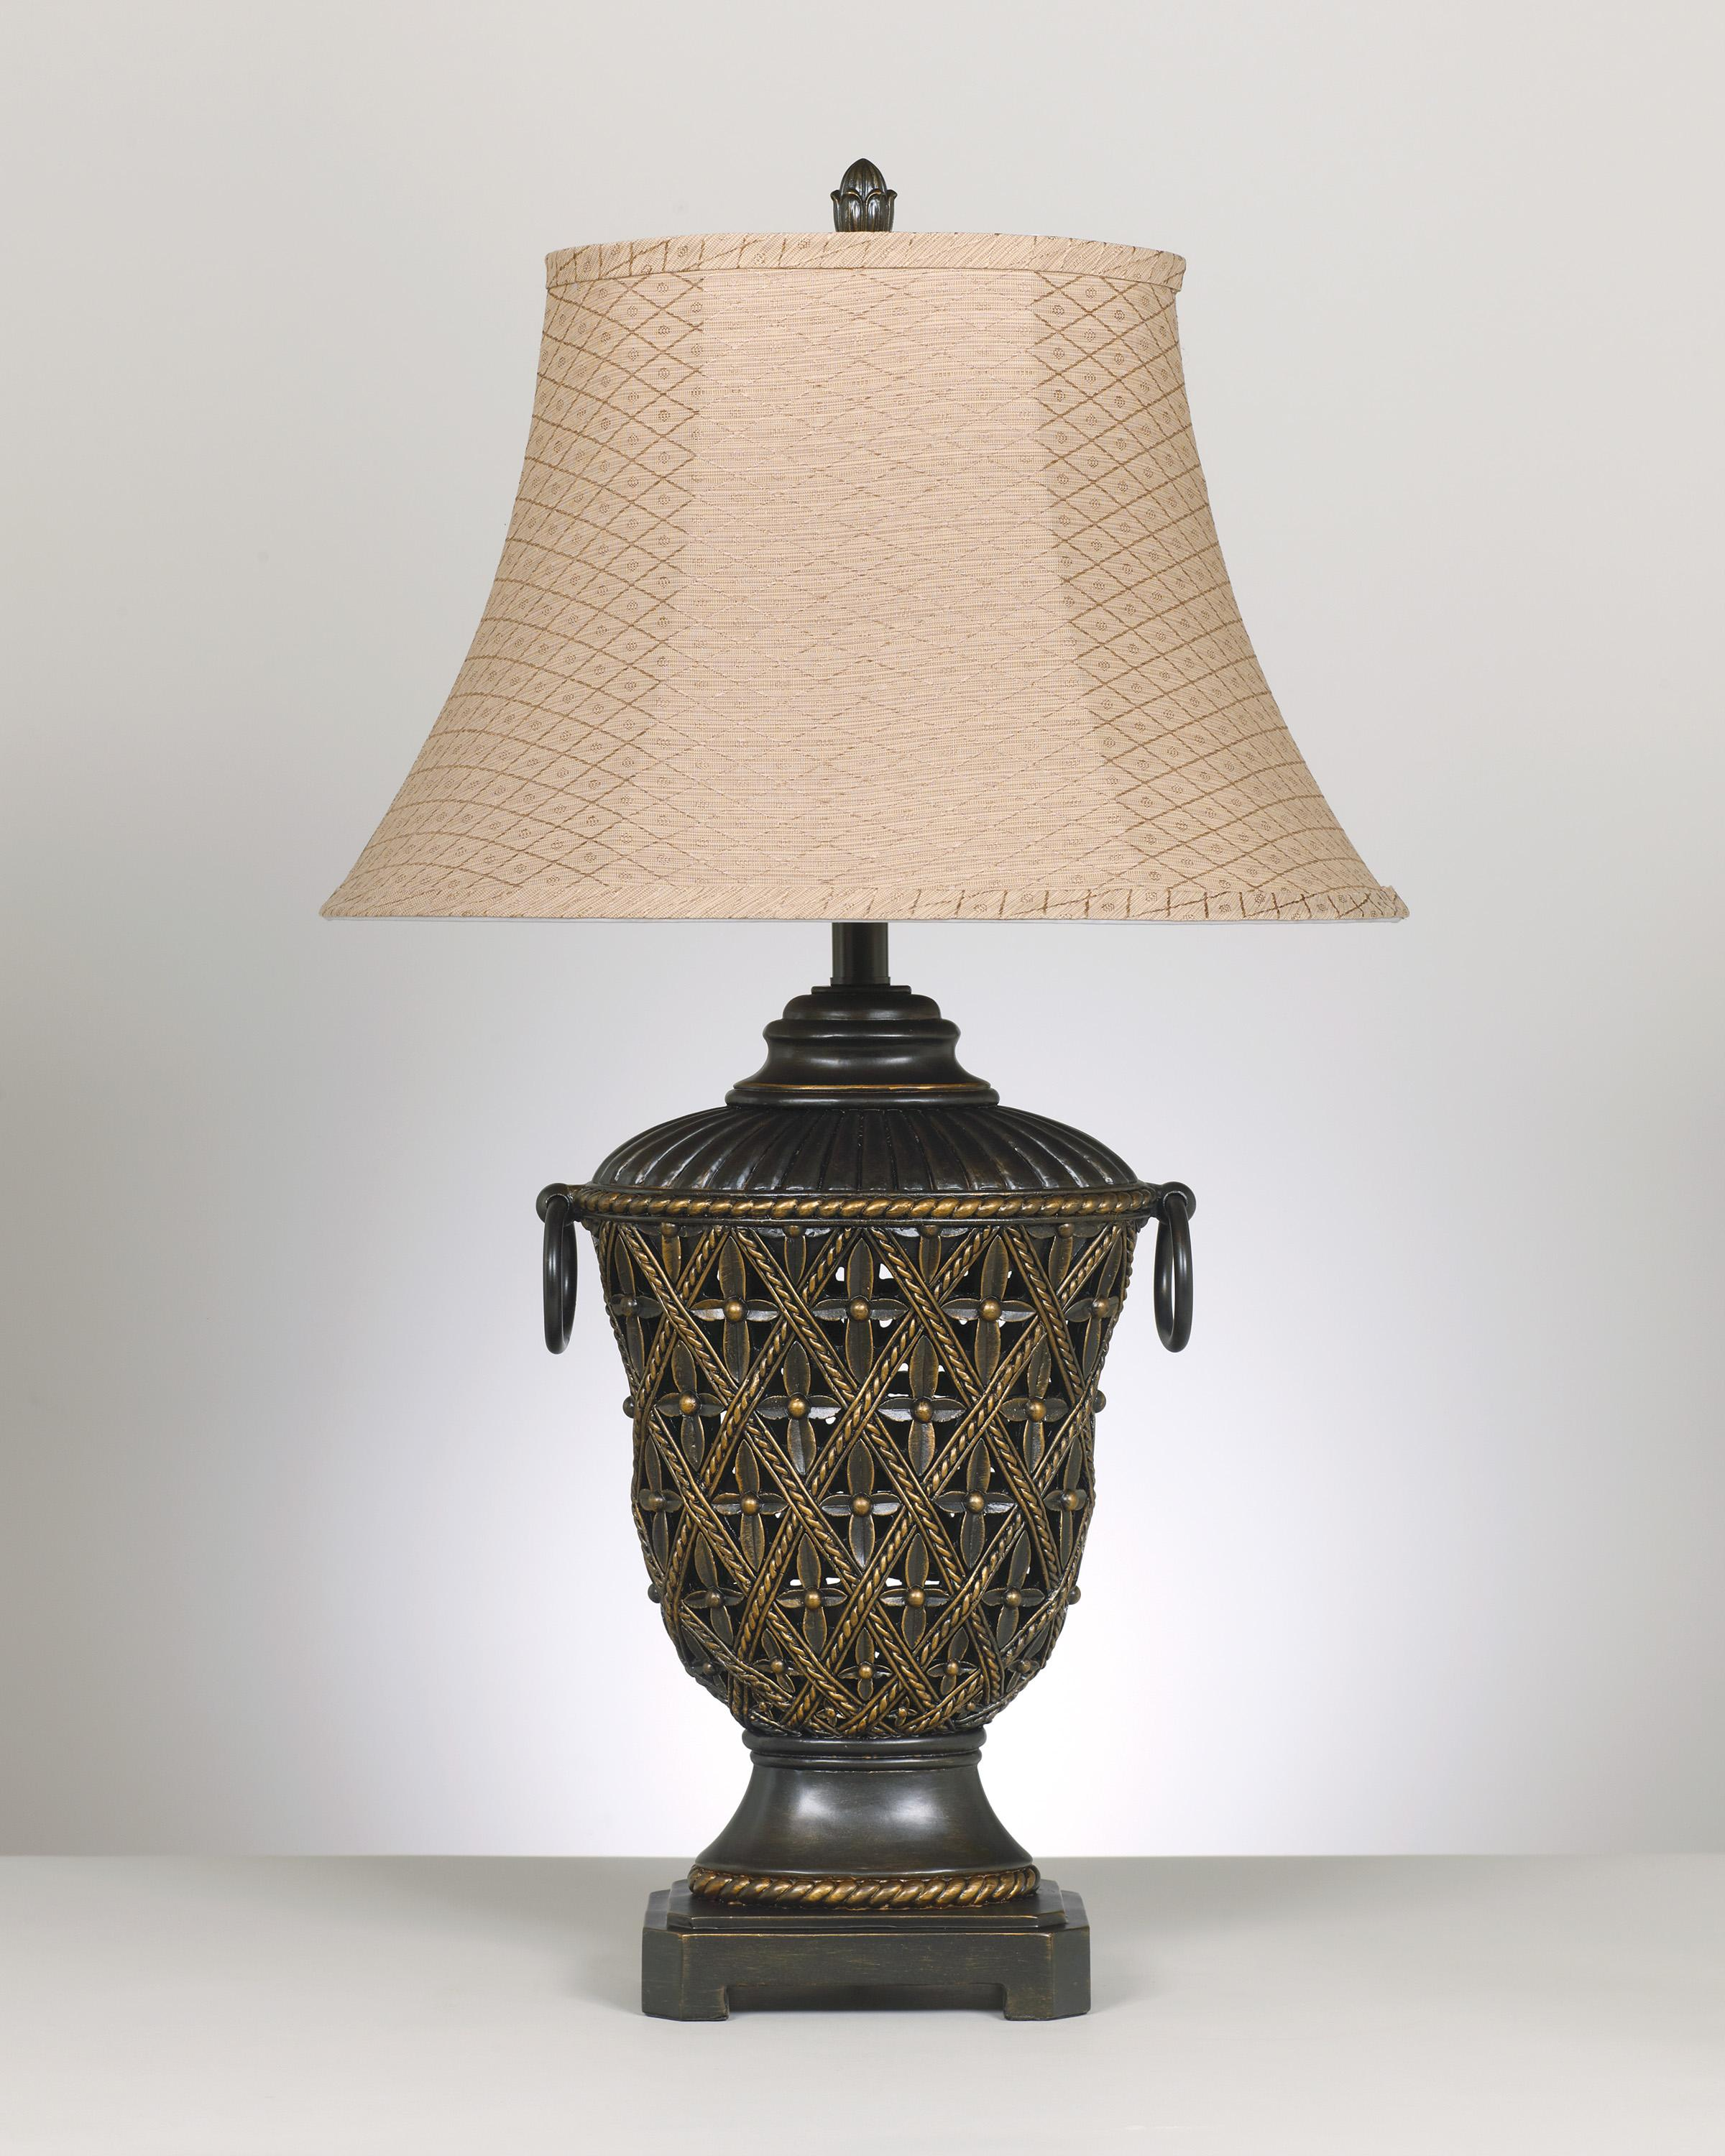 Signature Design by Ashley Lamps - Old World Set of 2 Redella Poly Table Lamps - Item Number: L513934